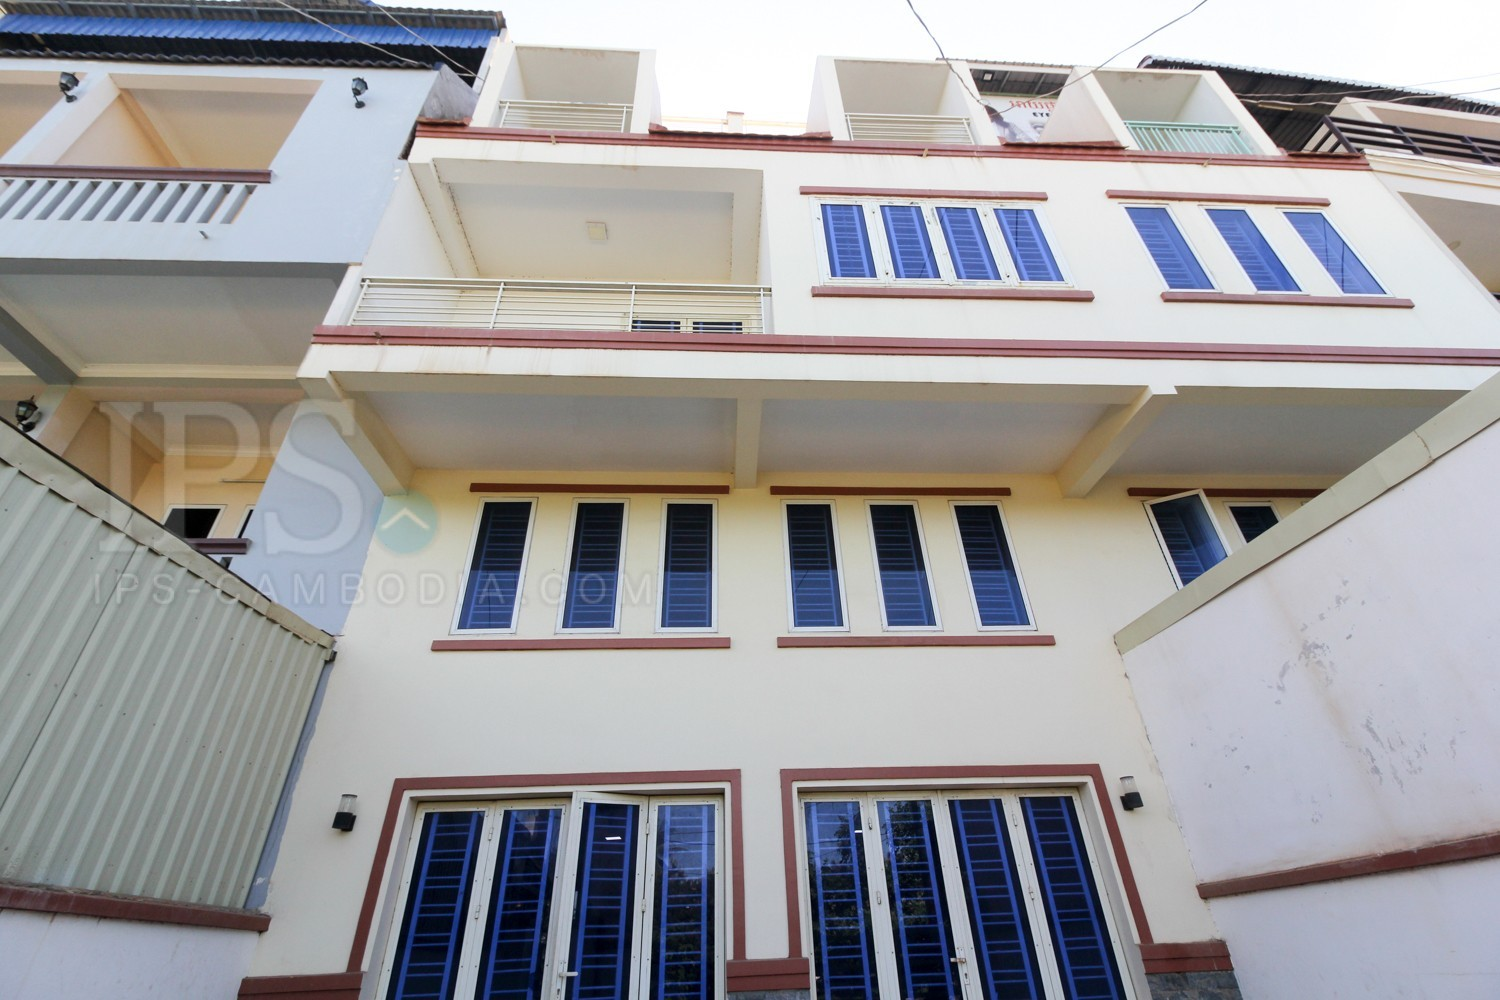 3 Bedroom Flat For Sale - Old Market / Pub Street, Siem Reap